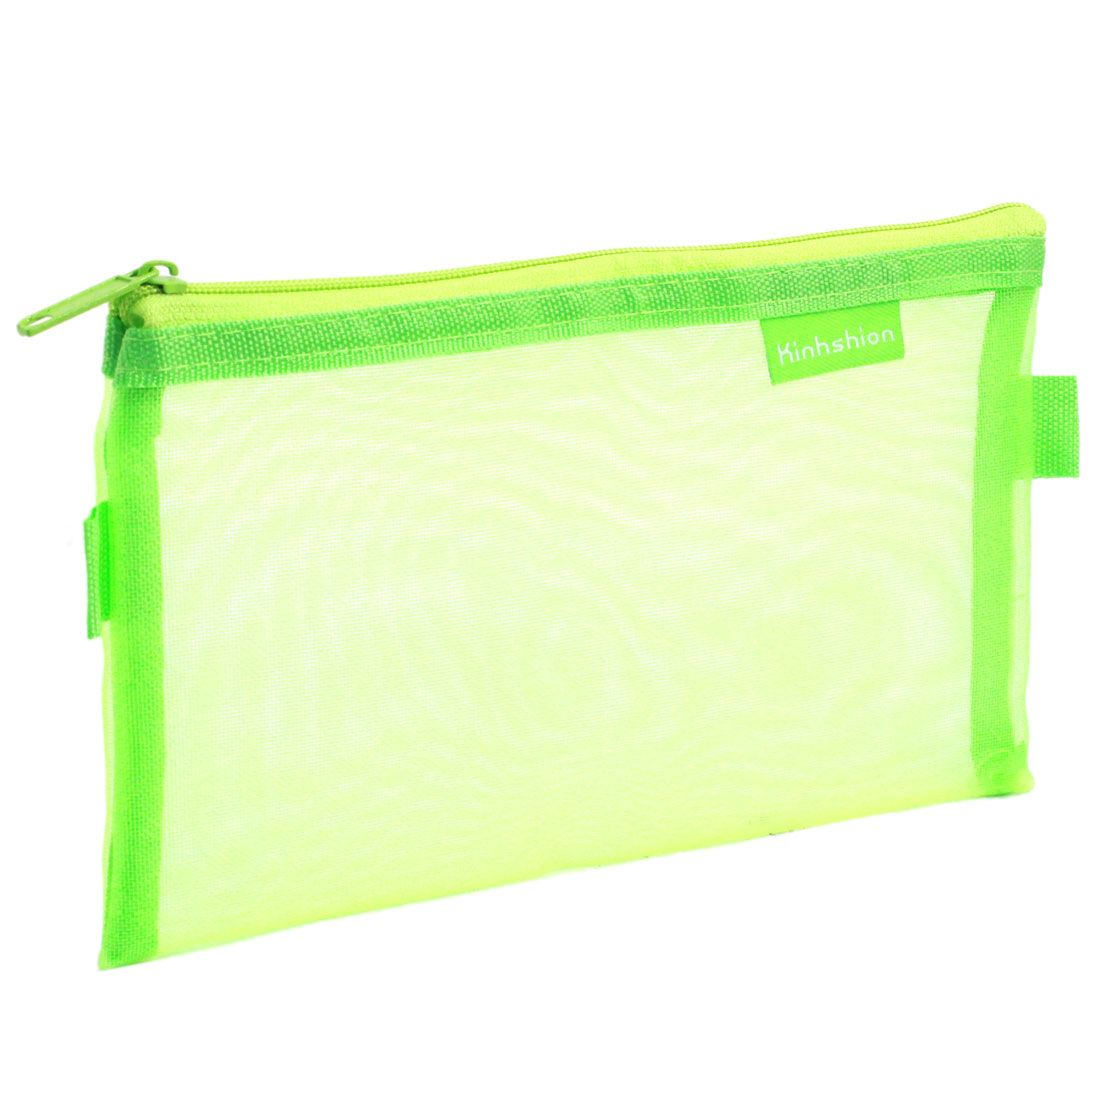 Office Nylon Mesh Zipper Closure Pencil Pen Stationary Holder Eraser Bag Green